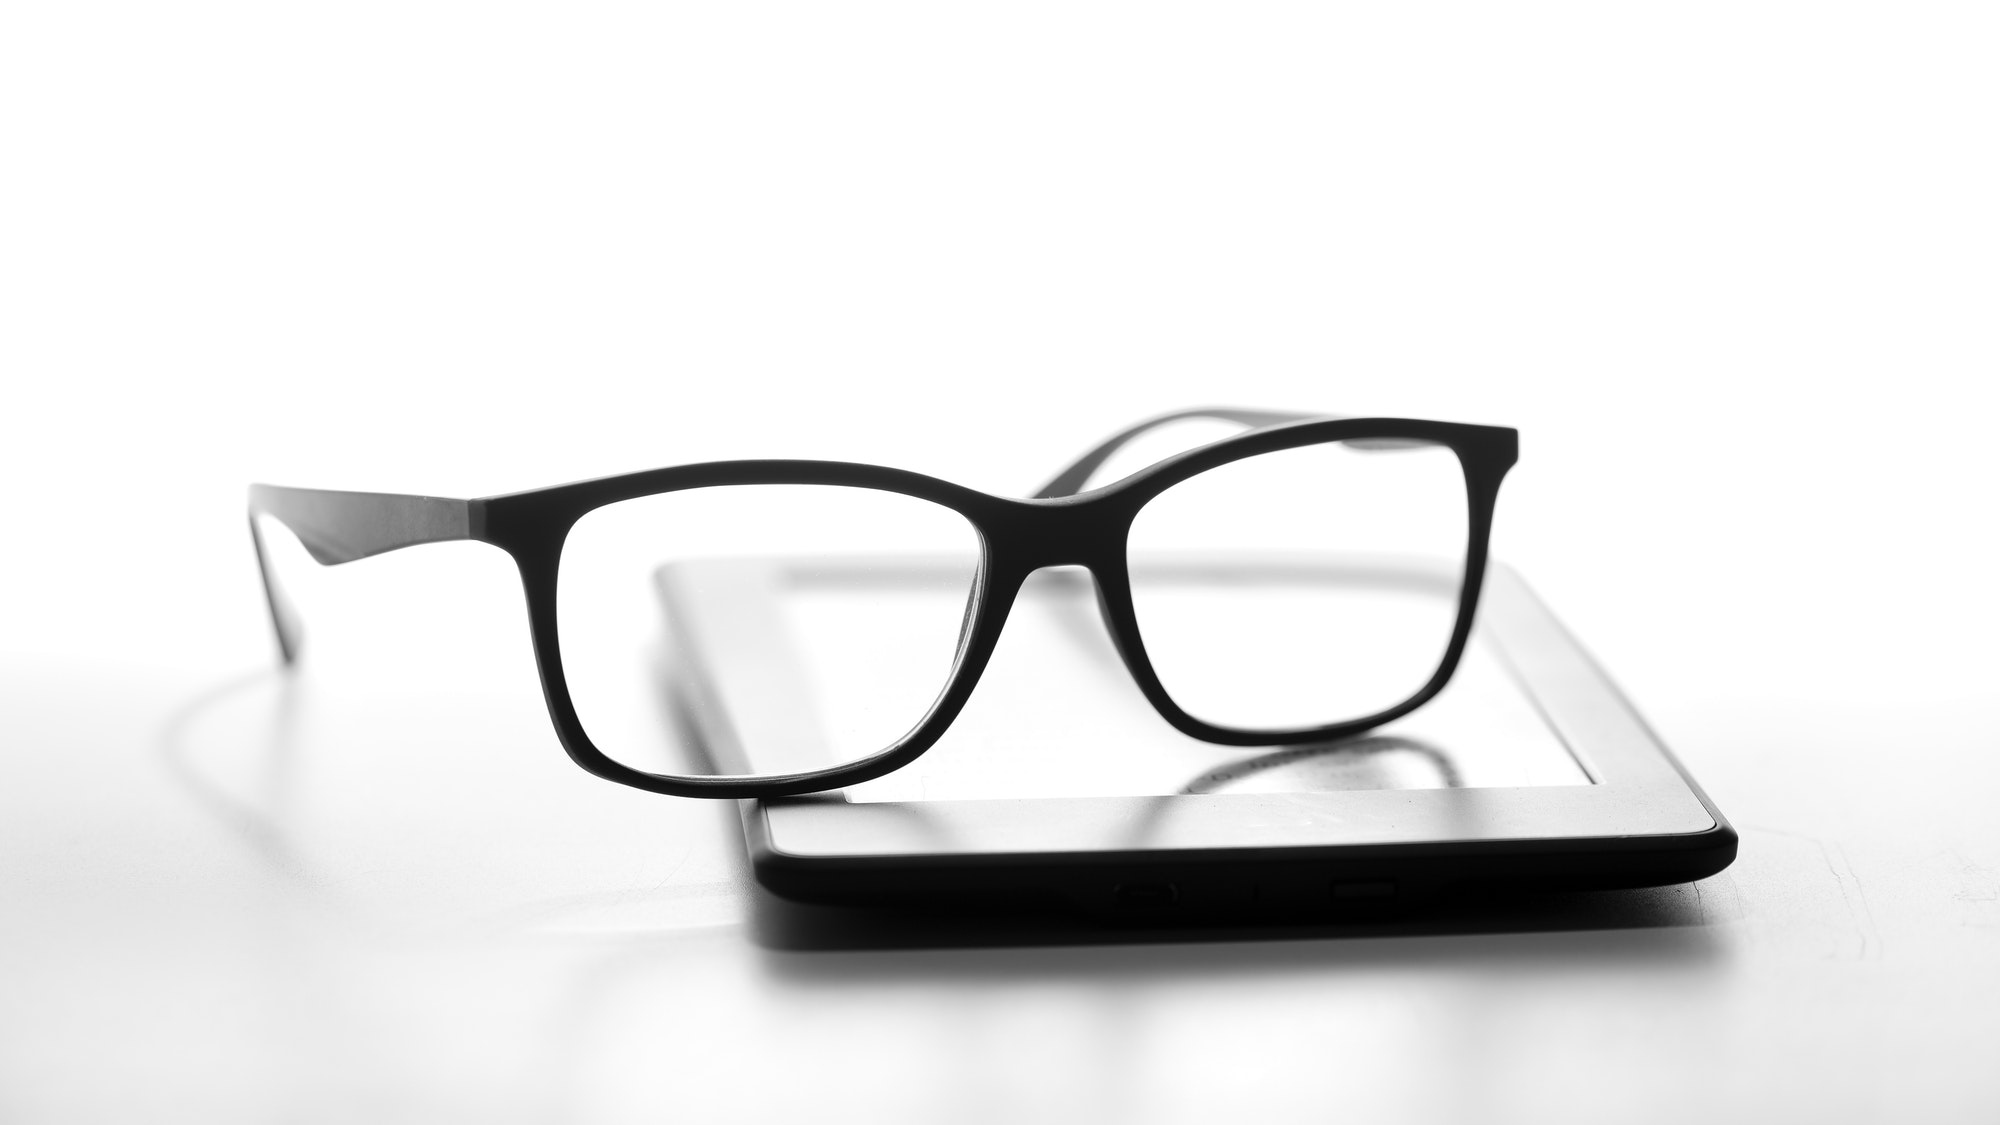 Reading glasses resting on an e-book